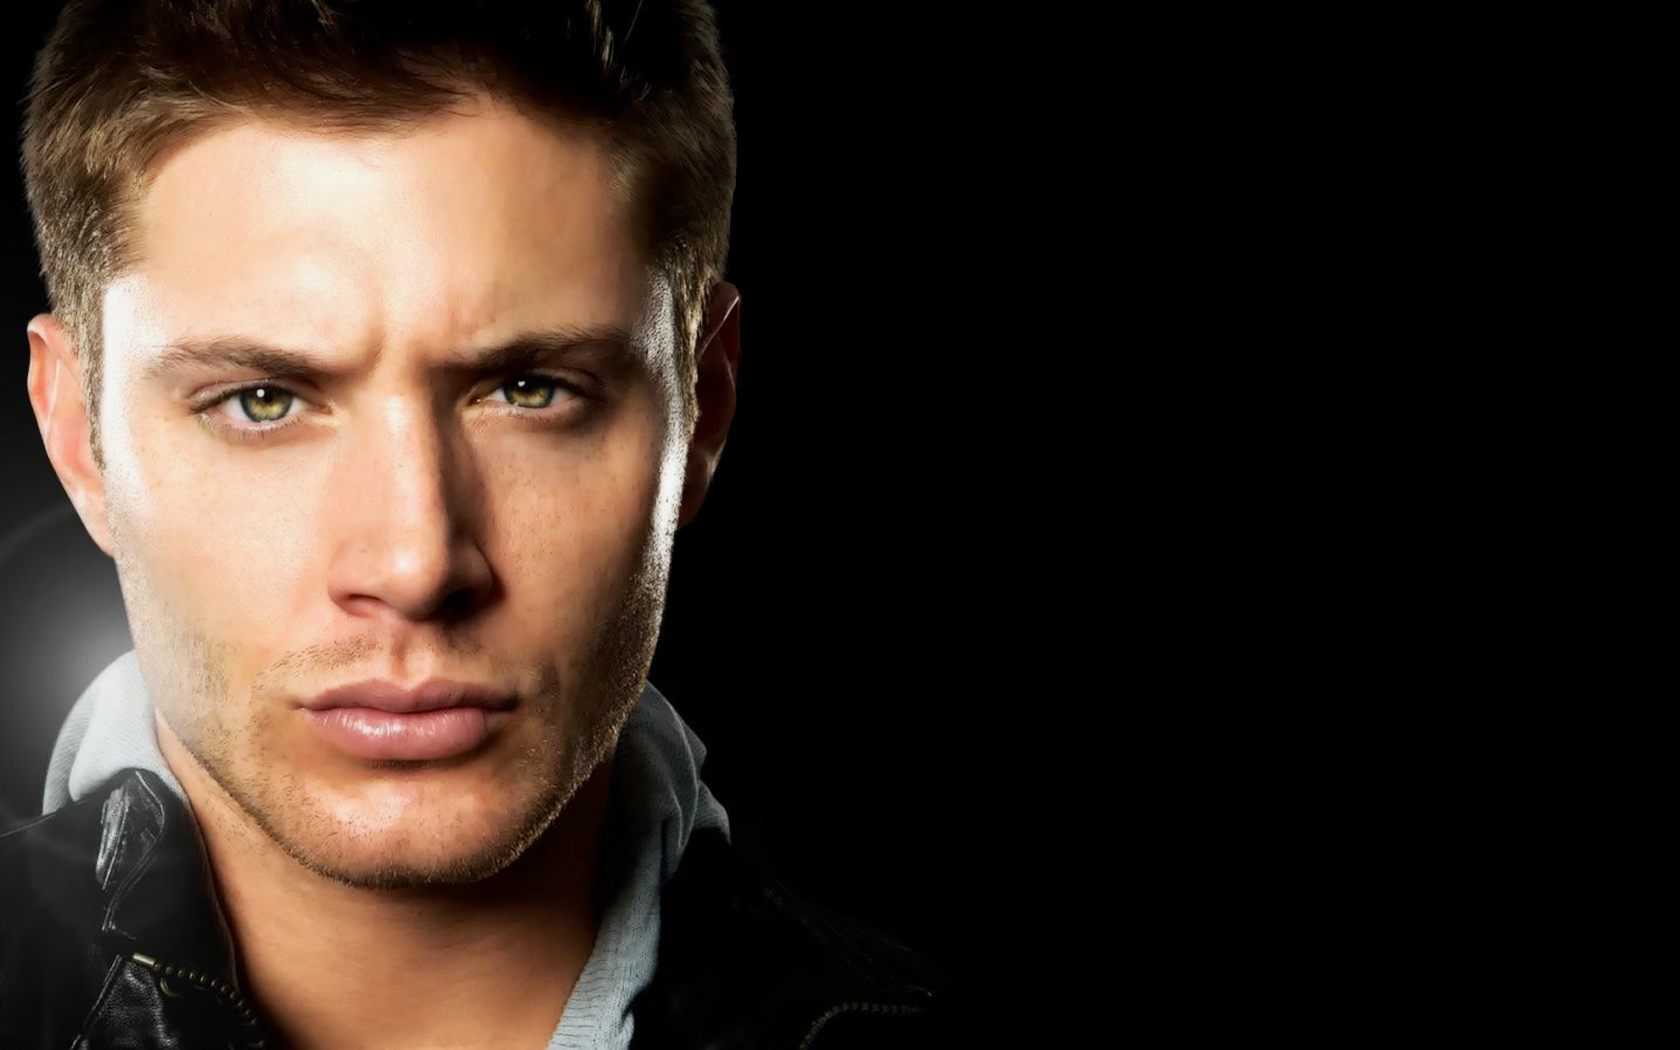 jensen ackles wallpapers beautifully pictured on digital